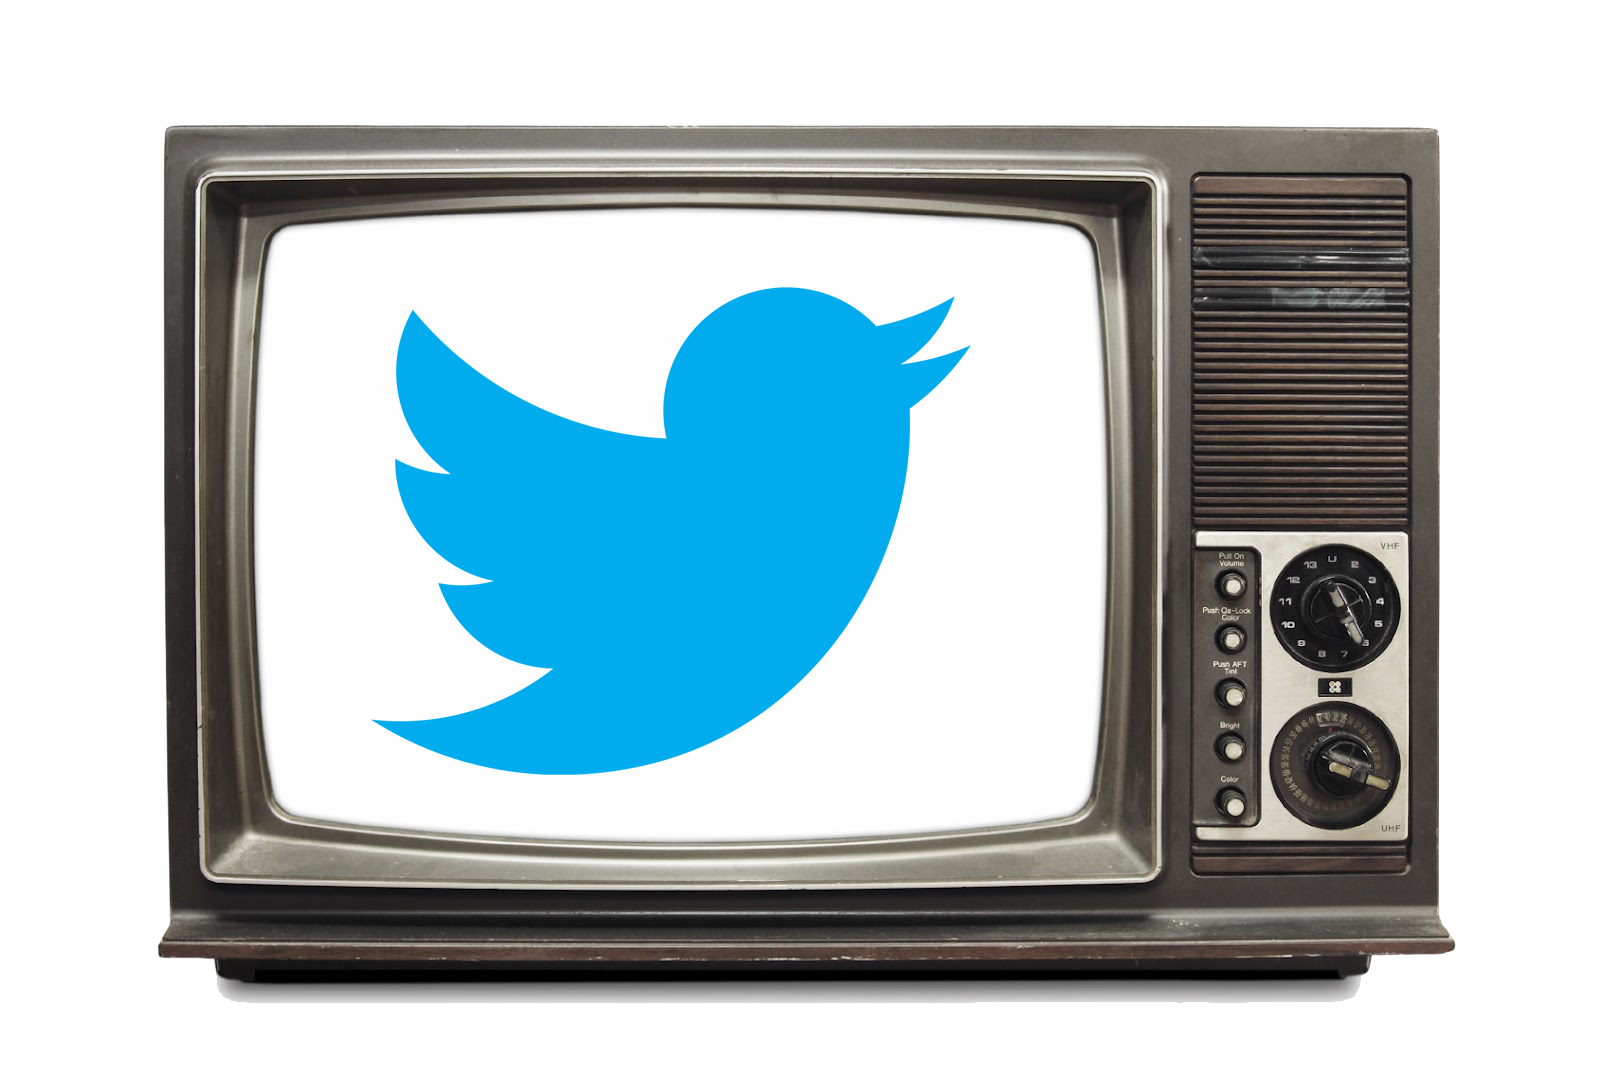 twitter social television - Web. Twitter diventa TV con 16 canali di streaming full time